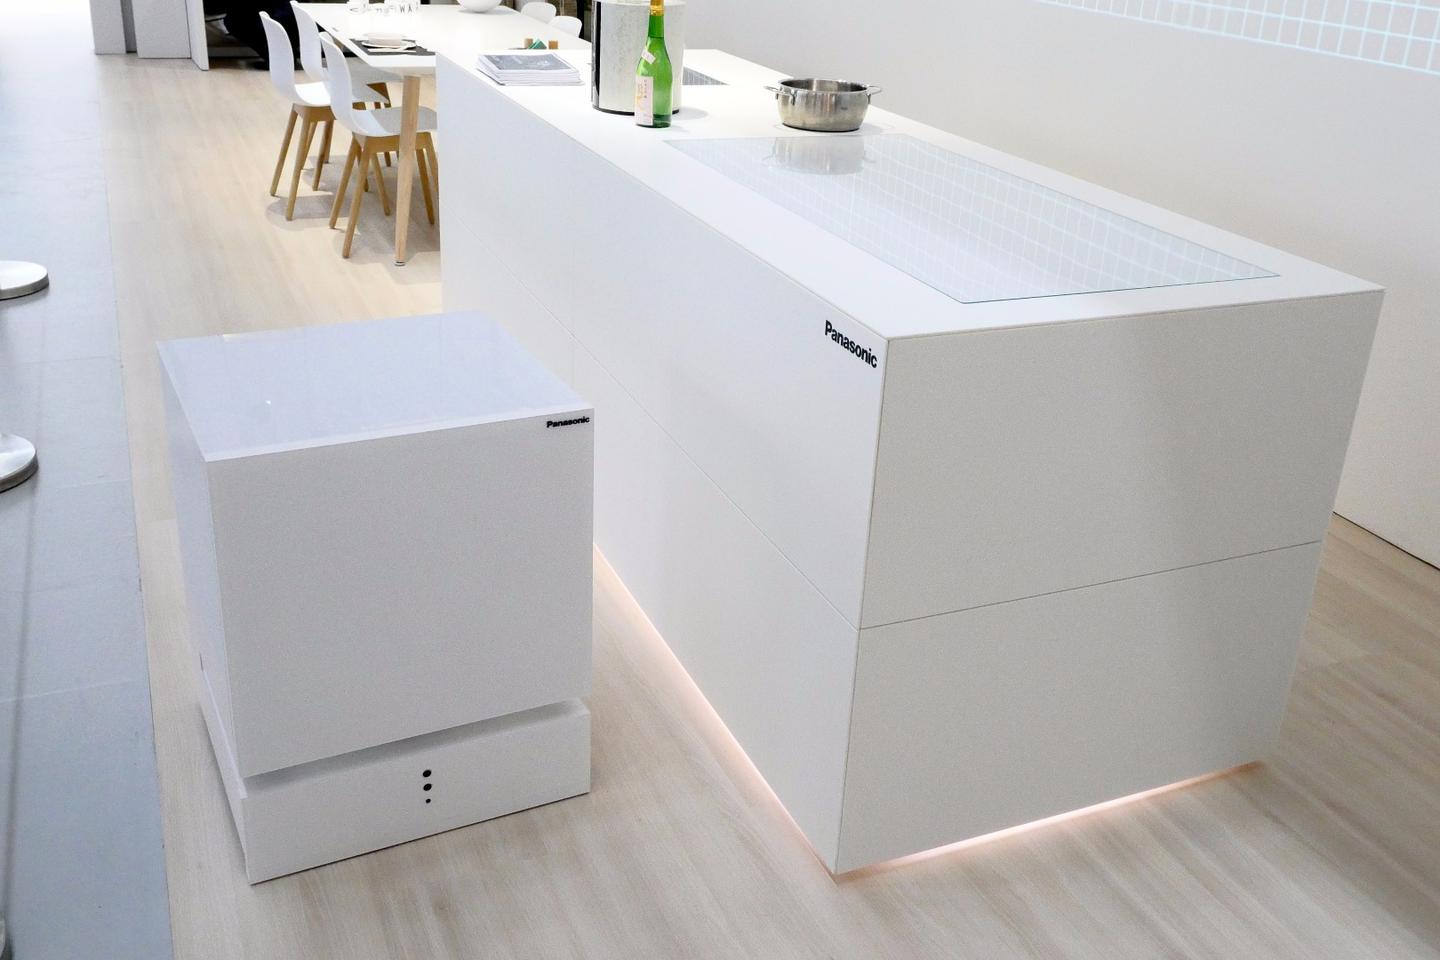 The Movable Fridge uses sensors to map a room and avoid obstacles as it trundles around the home